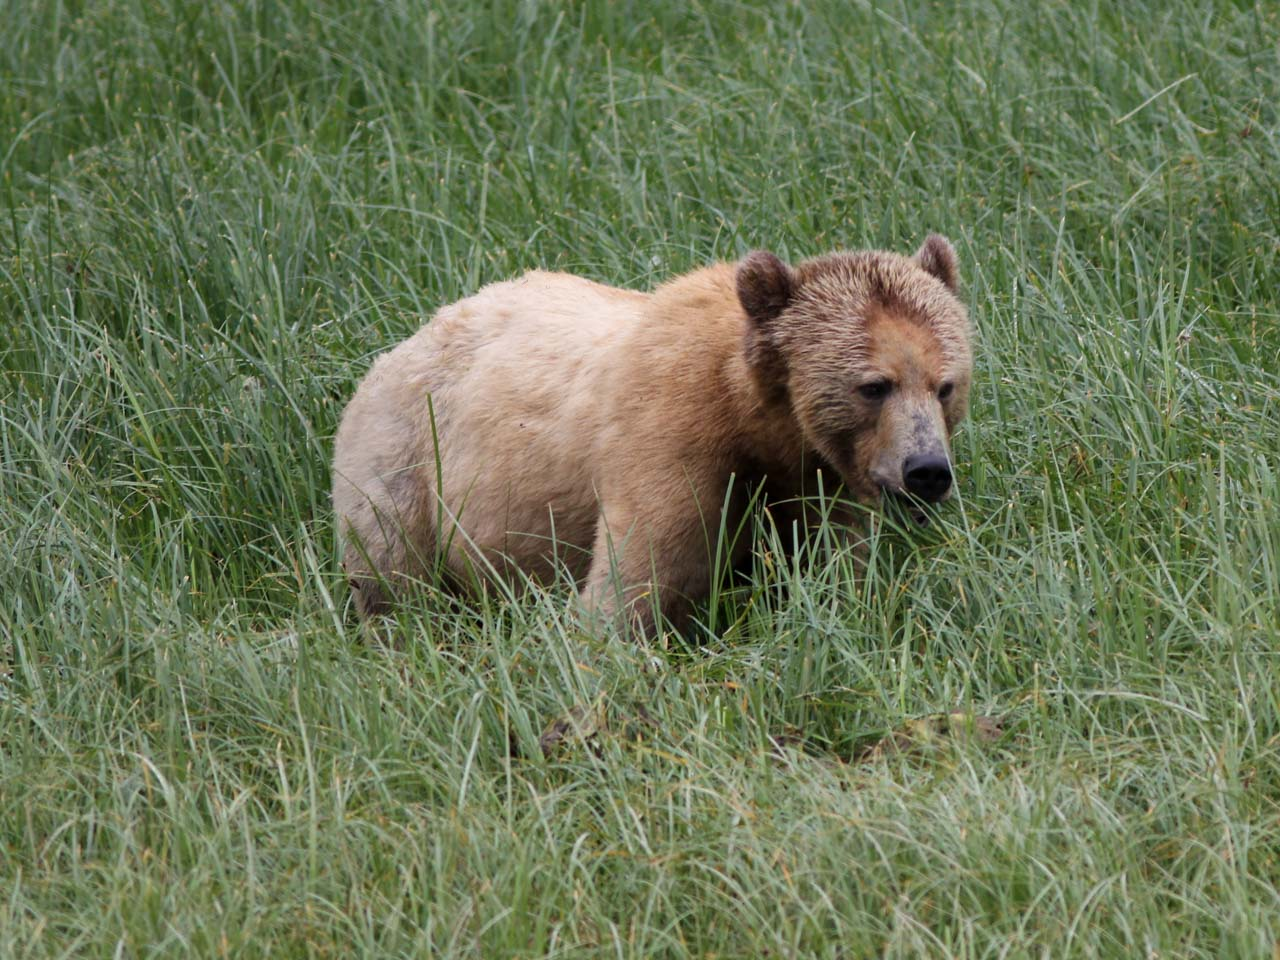 Grizzly bear feeding on a British Colombia meadow